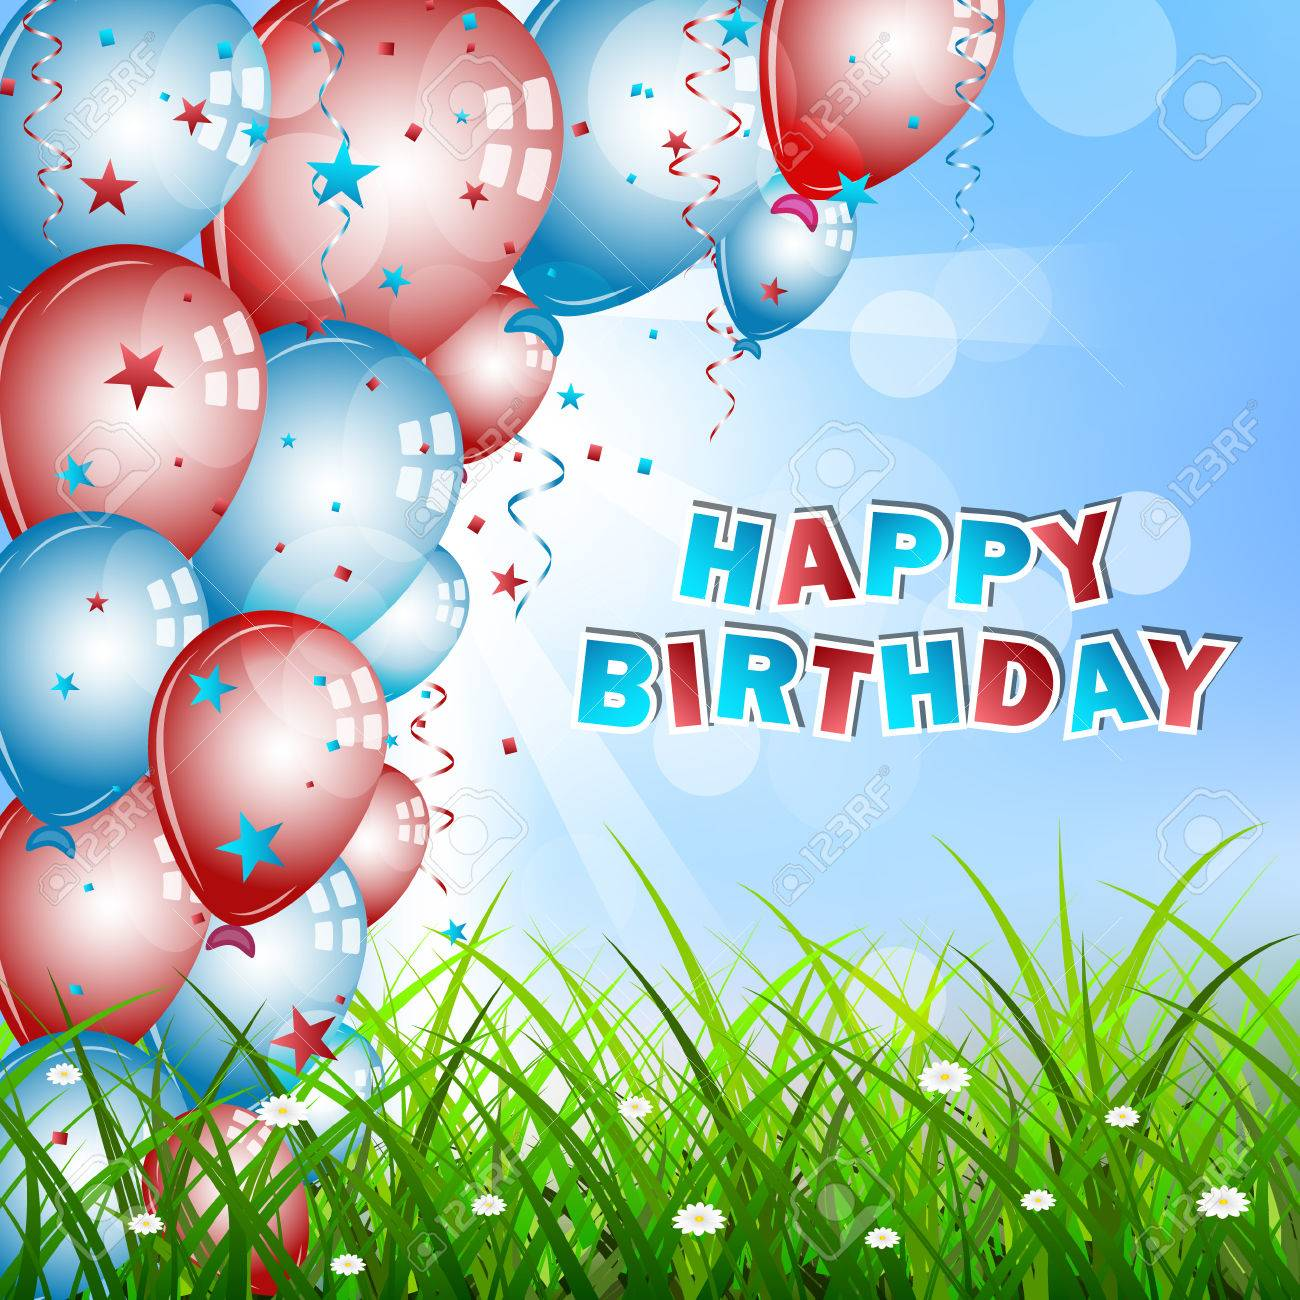 Birthday Wishes With Balloons Confetti Green Grass And Sky Vector Illustration Stock